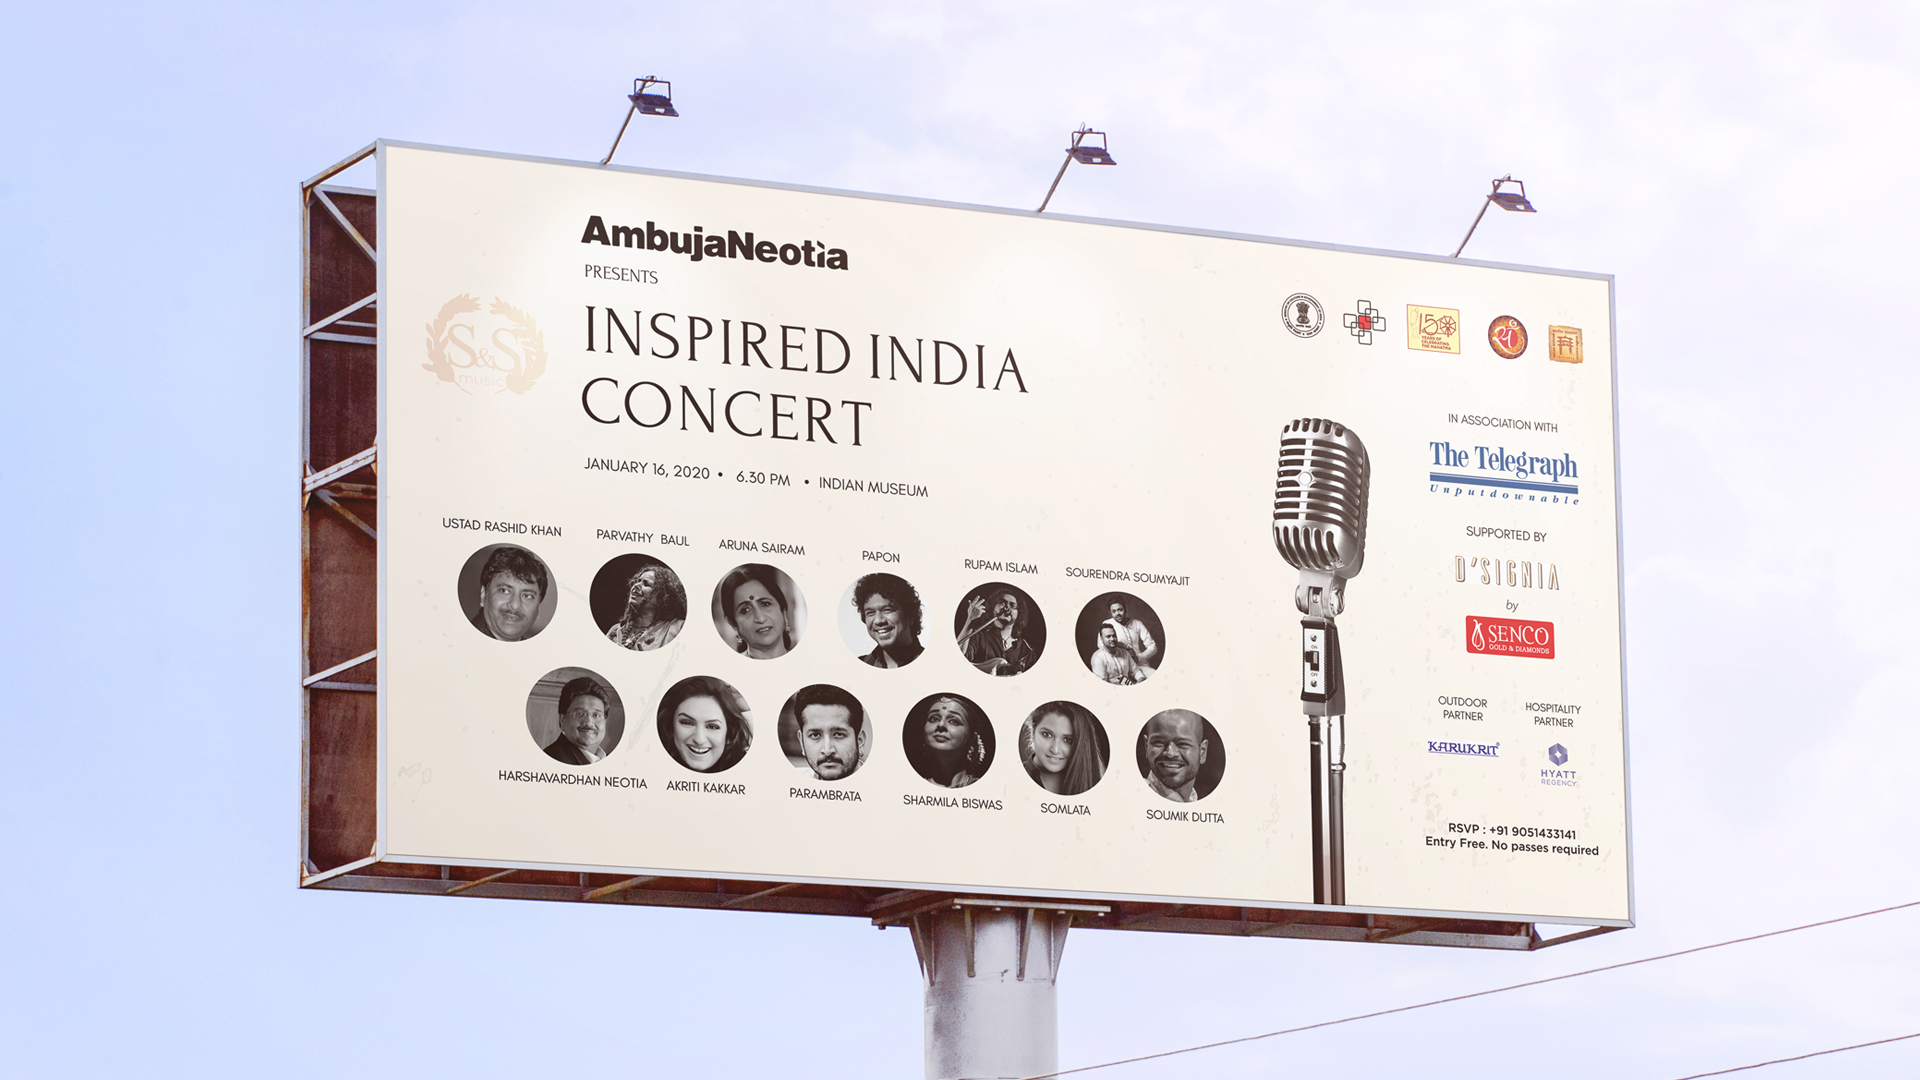 Inspired India Concert